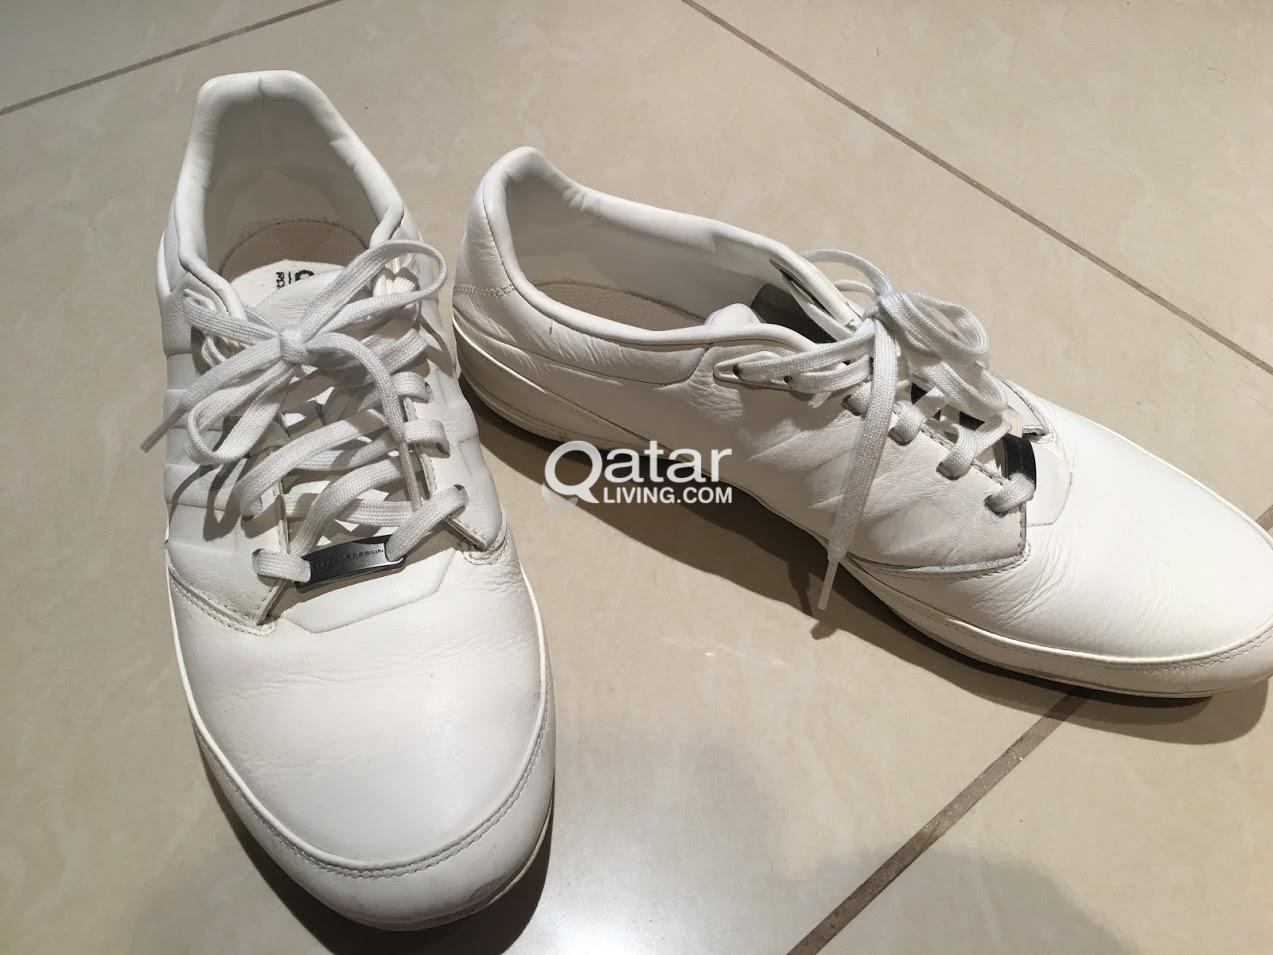 e37f02e8c69b SIZE 44 Men s White Leather Adidas Porsche Design Typ 64 2.0 Shoes ...